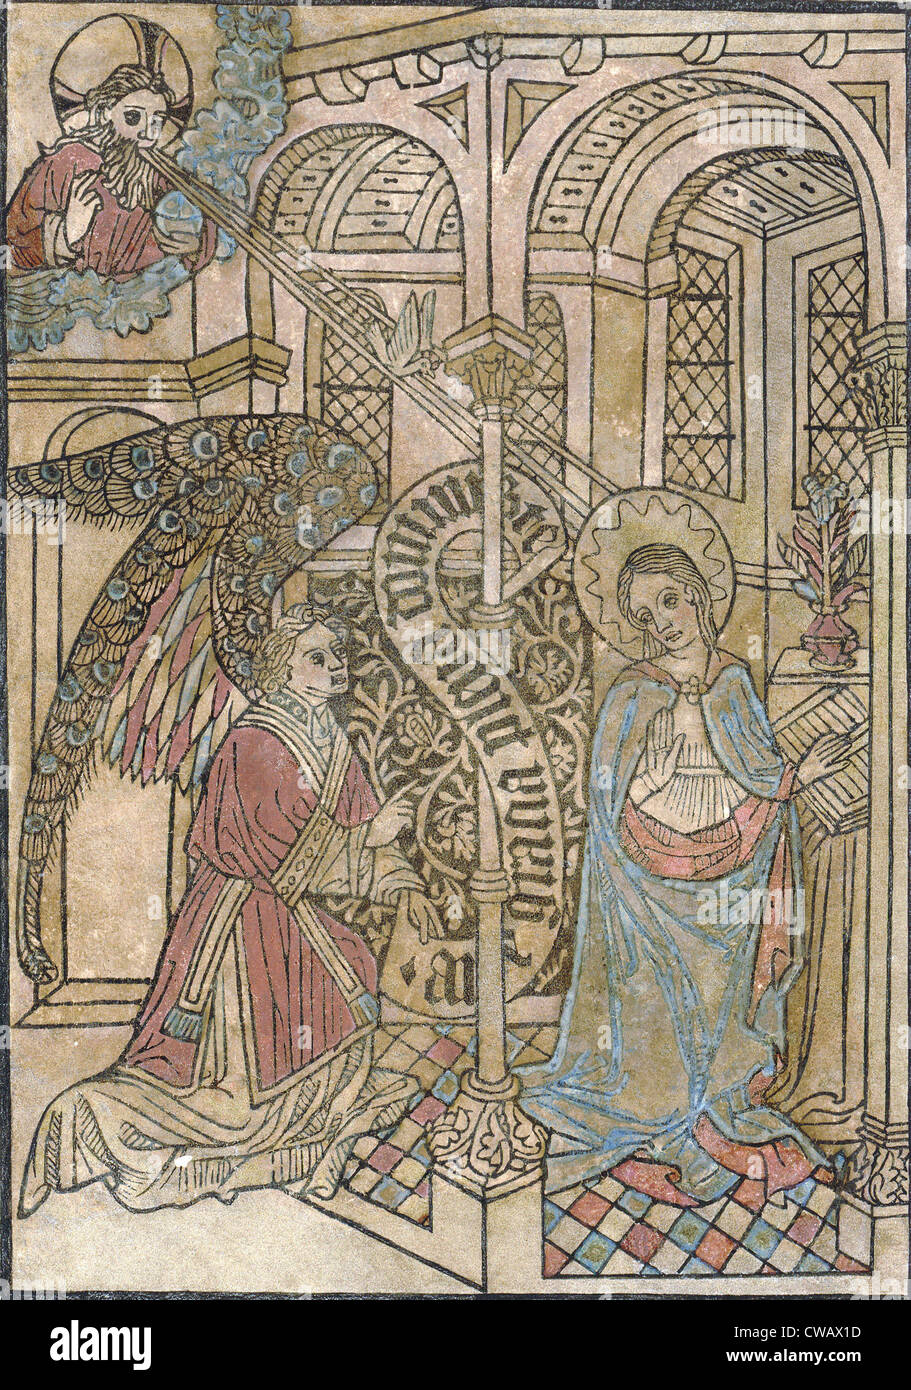 The Annunciation, depicting the visitation of the archangel Gabriel, circa 1450s. - Stock Image